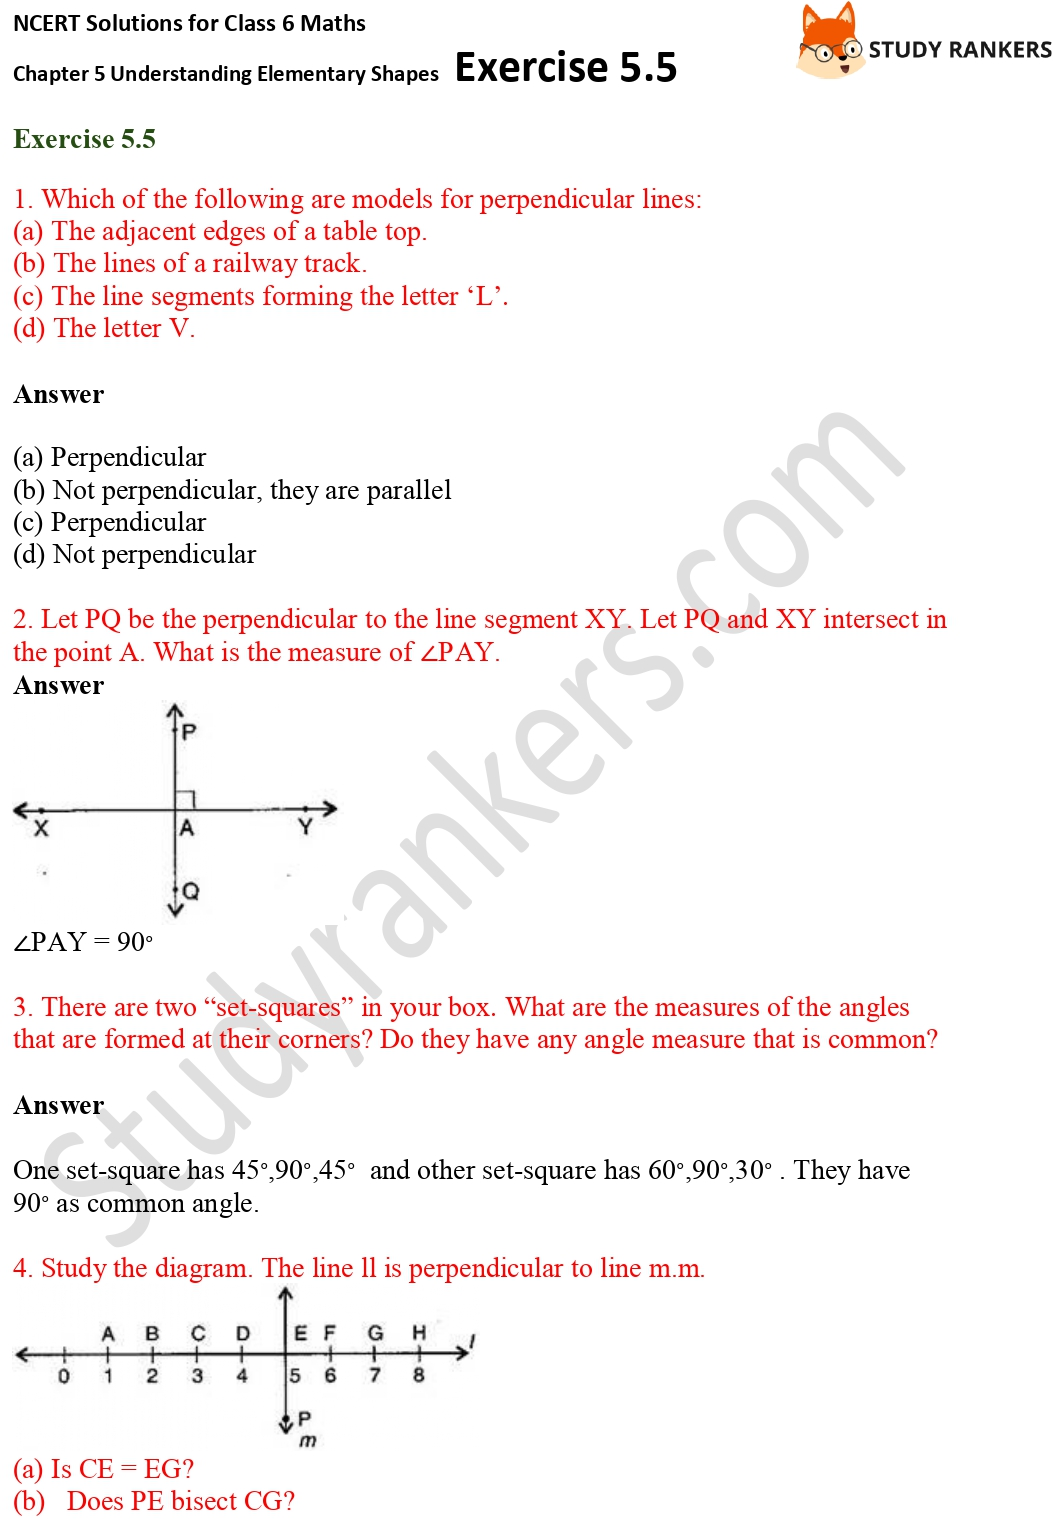 NCERT Solutions for Class 6 Maths Chapter 5 Understanding Elementary Shapes Exercise 5.5 Part 1